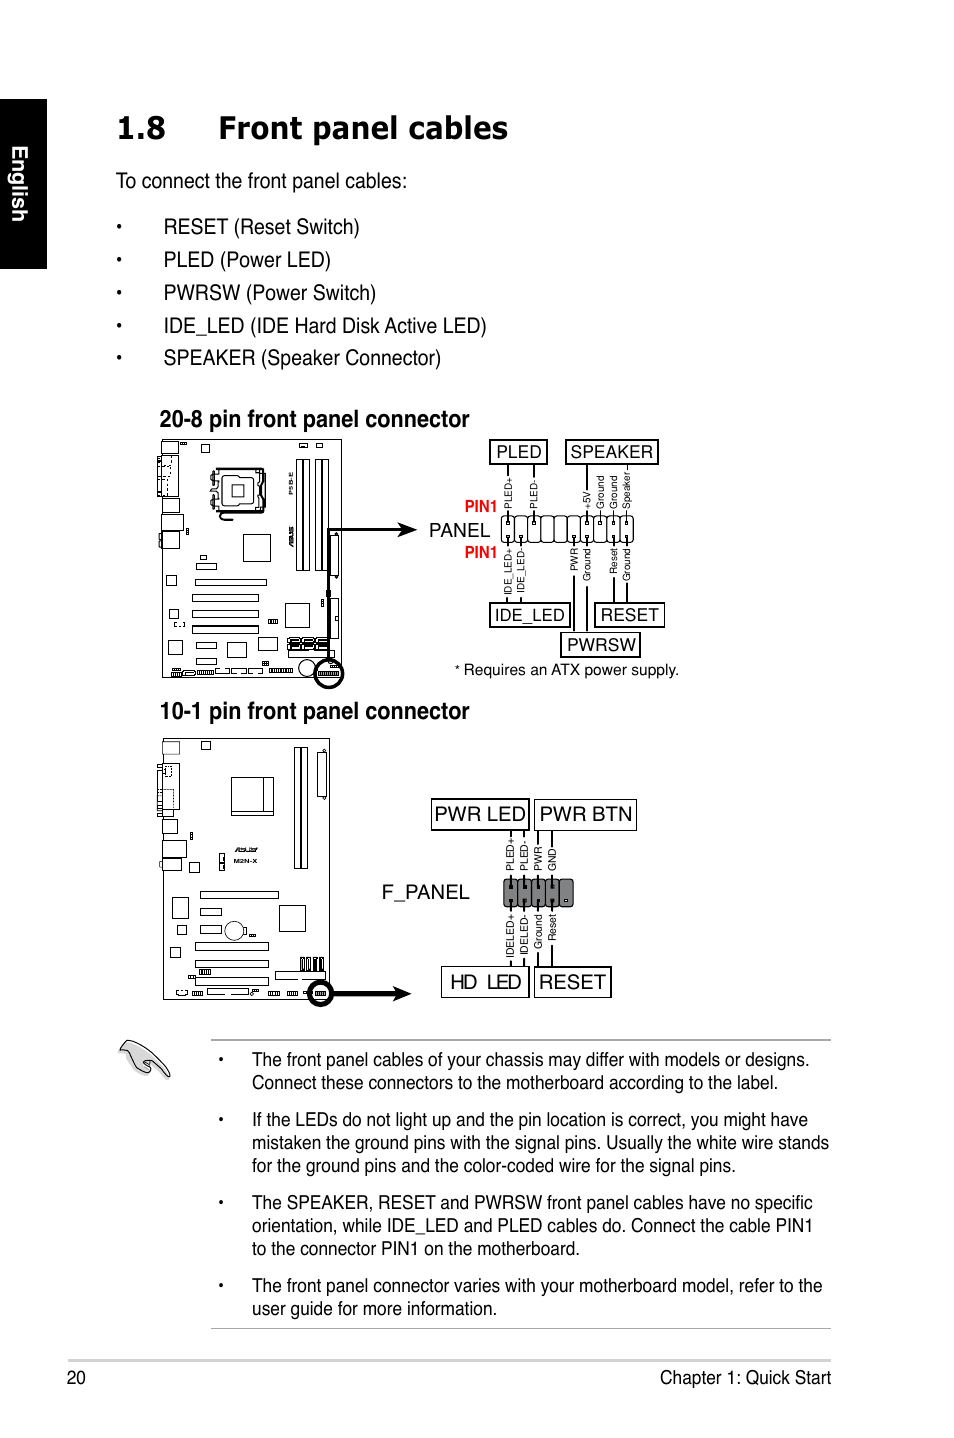 Motherboard Front Panel Diagram - sandy bridge e and x79 the